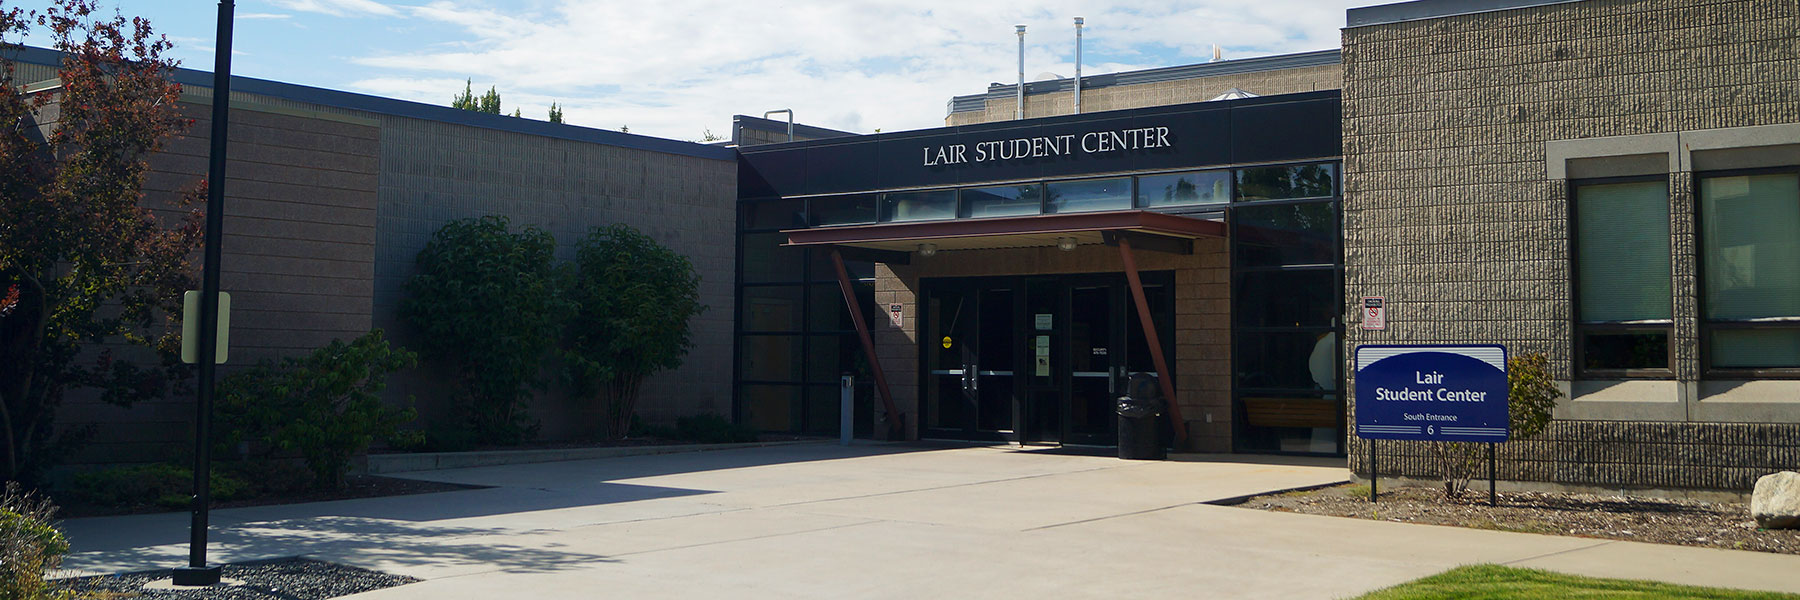 Exterior of Lair Student Center